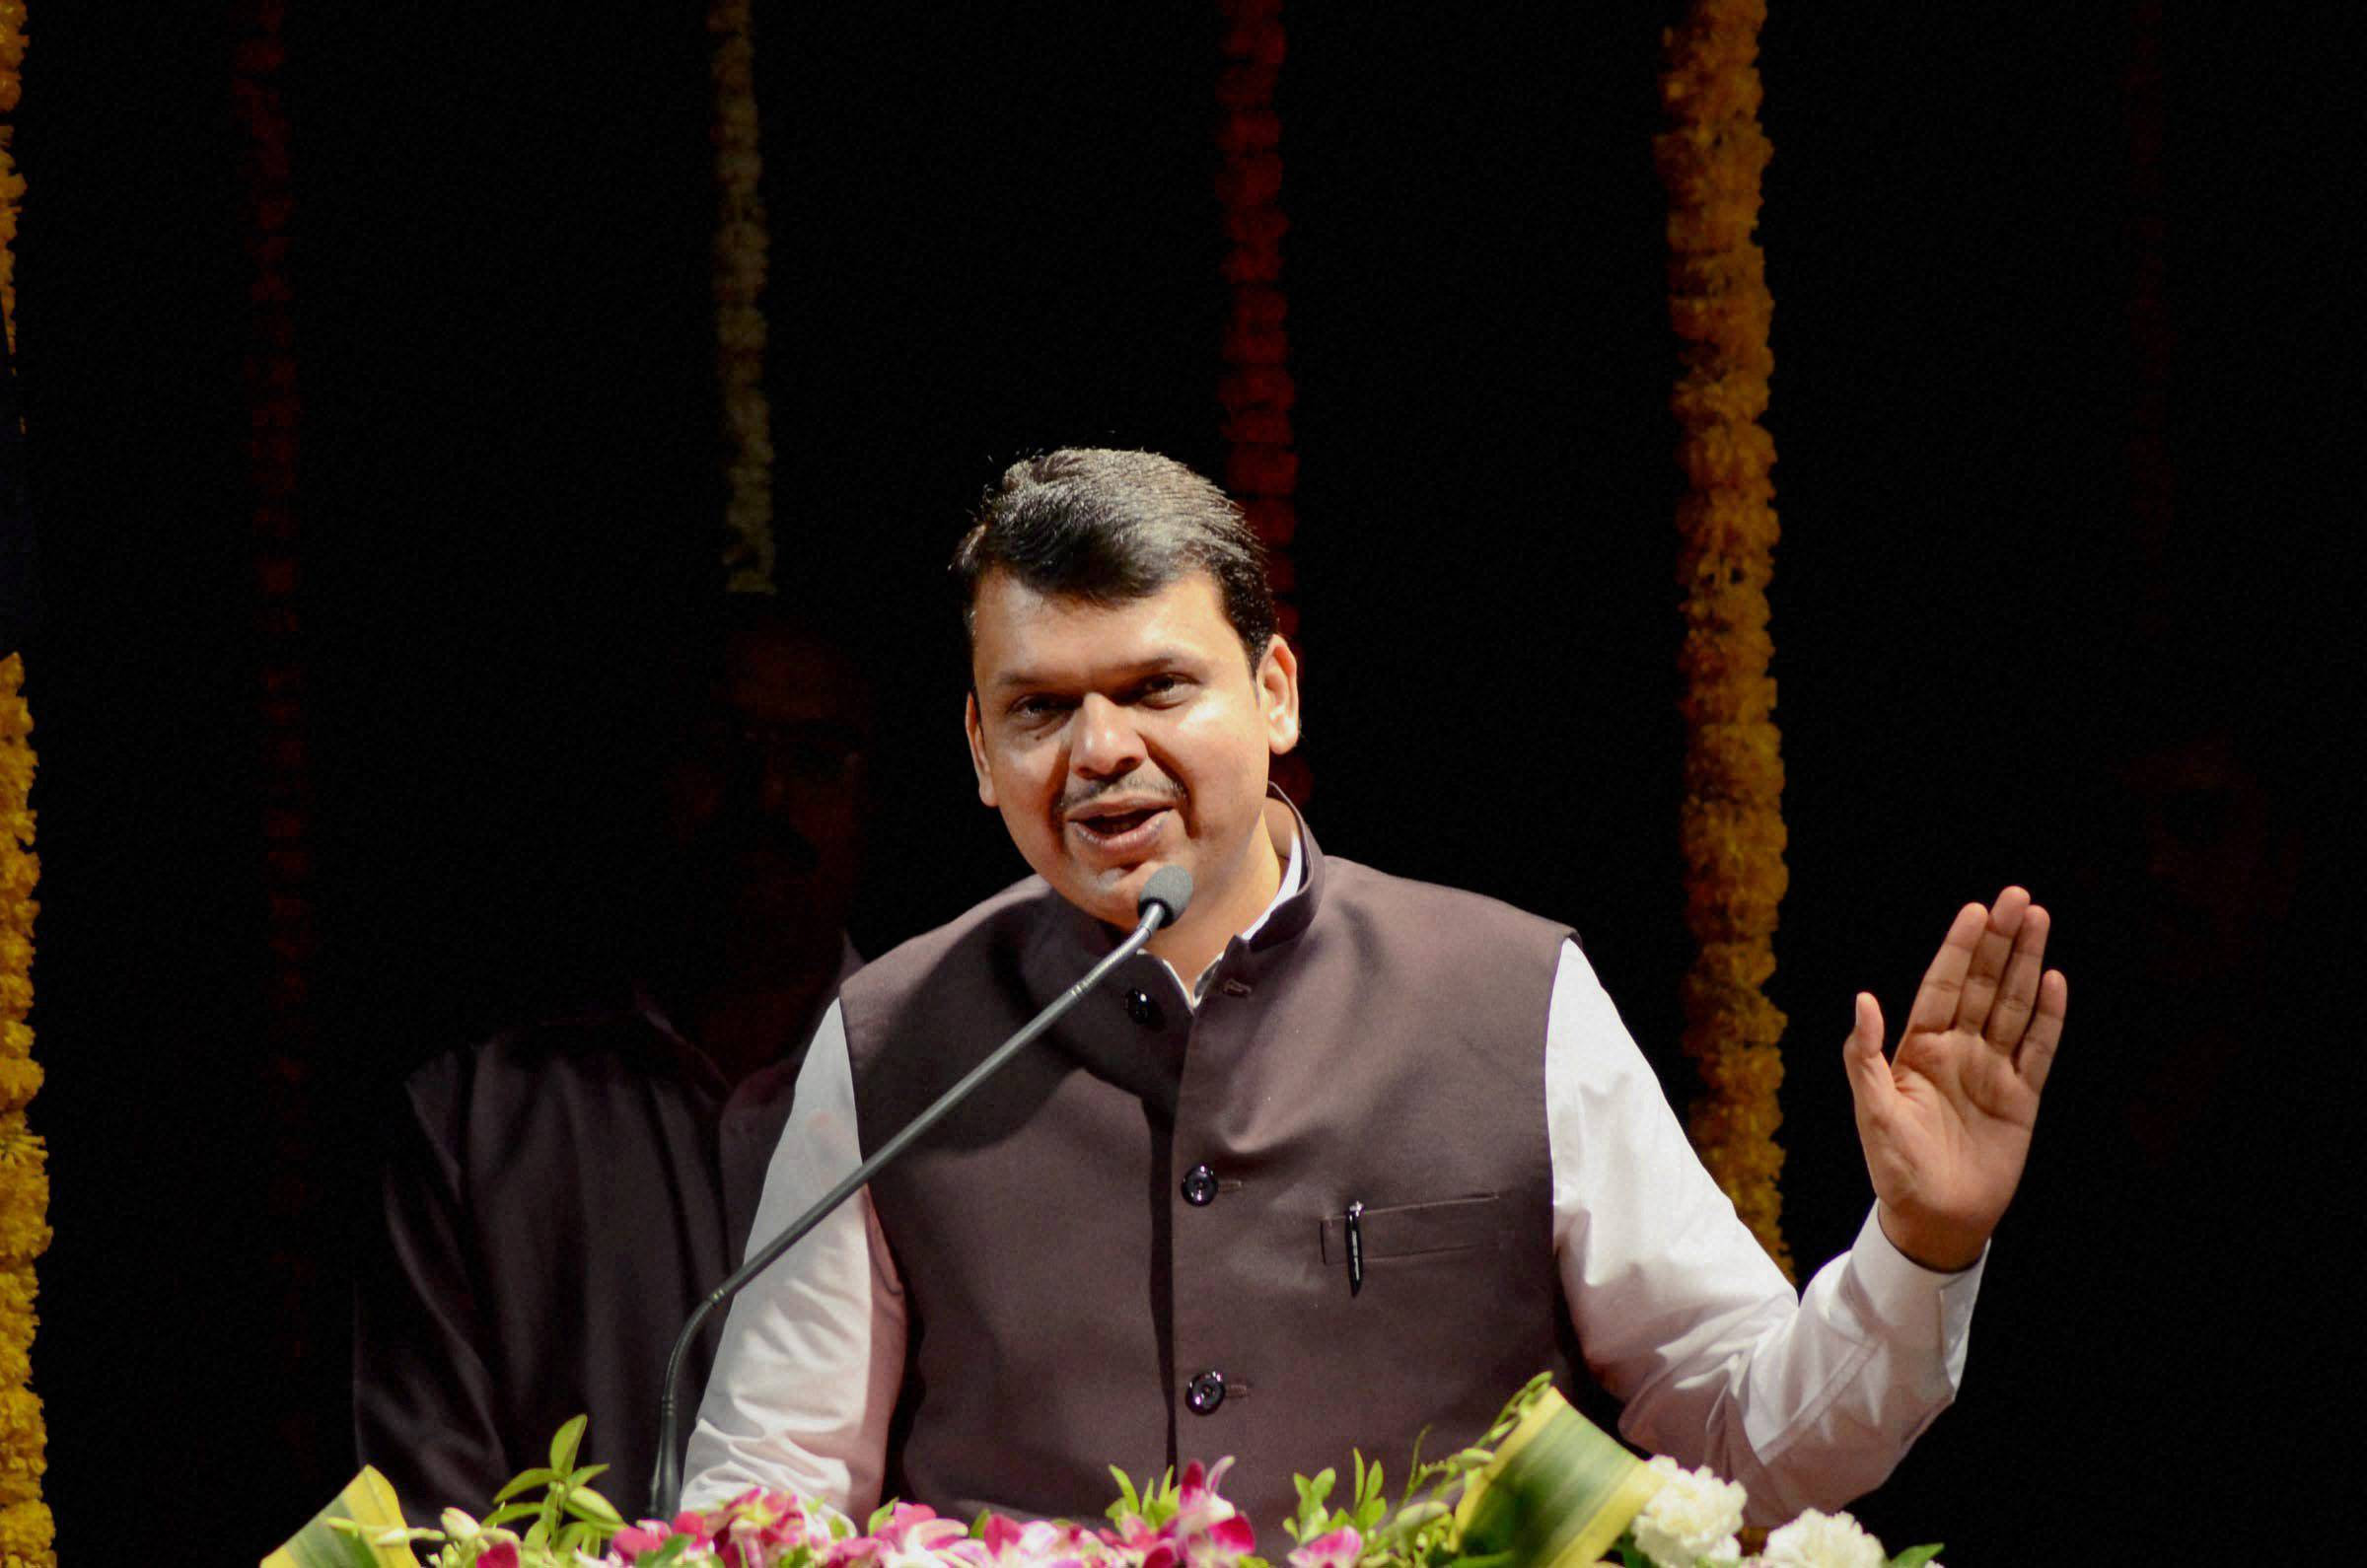 Maharashtra CM Fadnavis to File Reply to SC Notice on Plea Against His Election